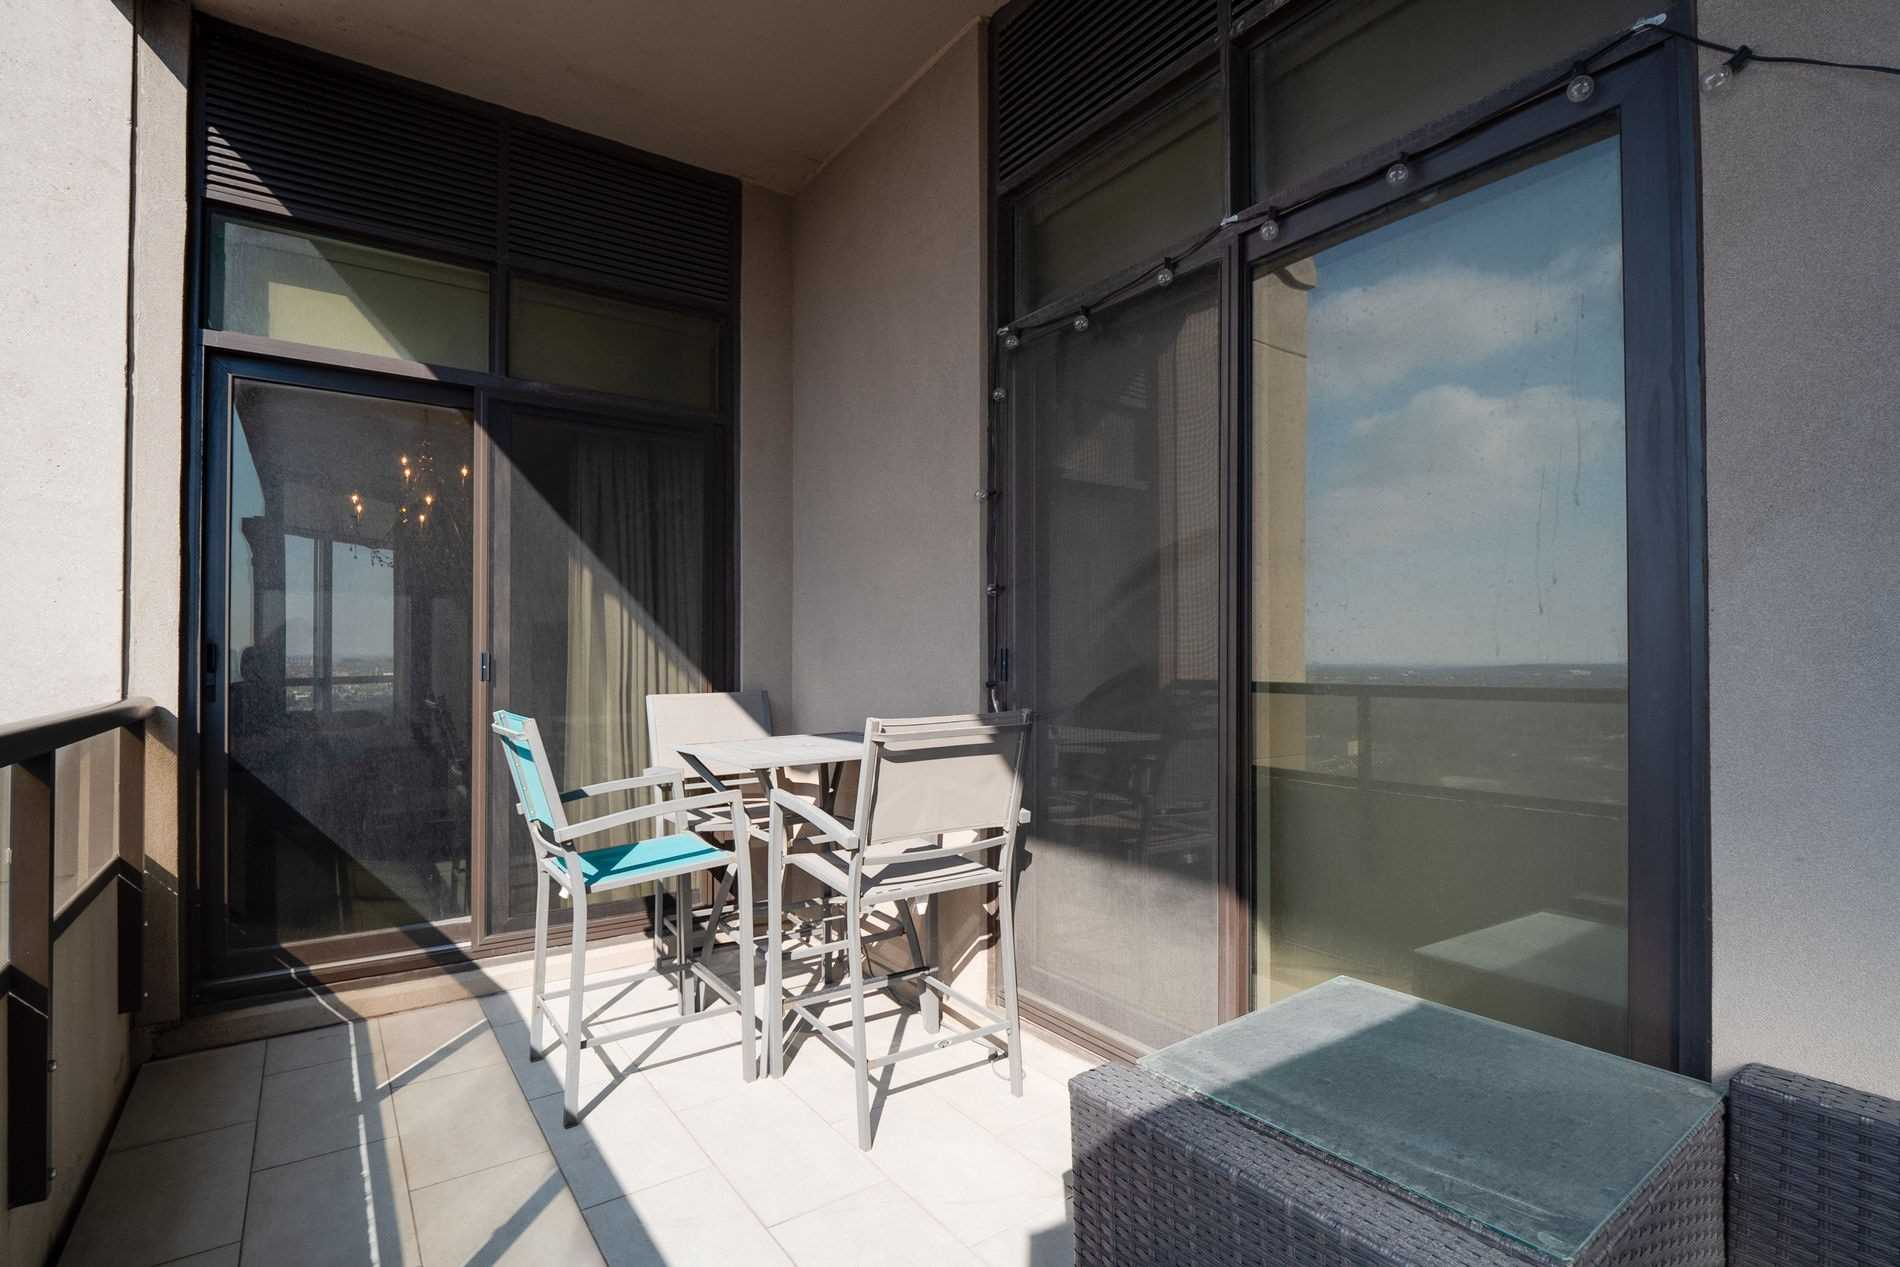 Image 28 of 40 showing inside of 2 Bedroom Condo Apt Apartment for Sale at 9255 Jane St Unit# 1702, Vaughan L6A0K1